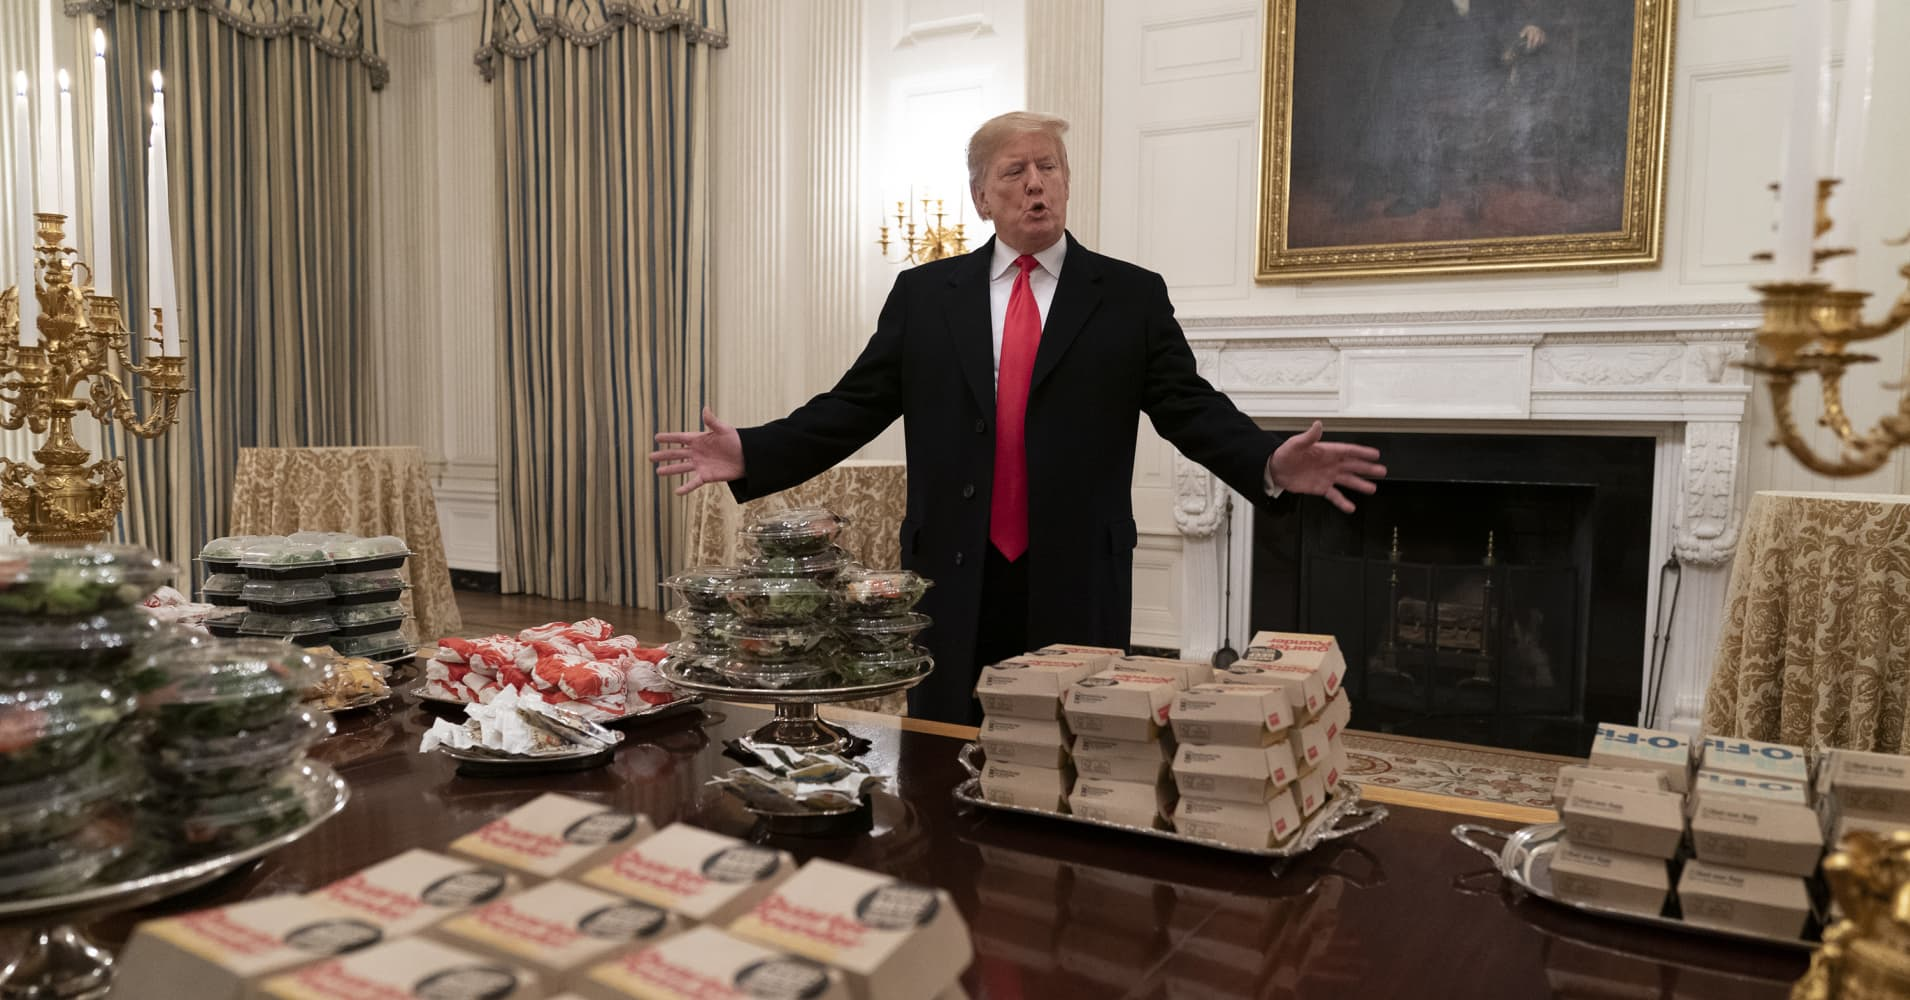 Trump's getting trolled for Clemson fast food dinner, but Warren Buffett and others are big fans of junk food too